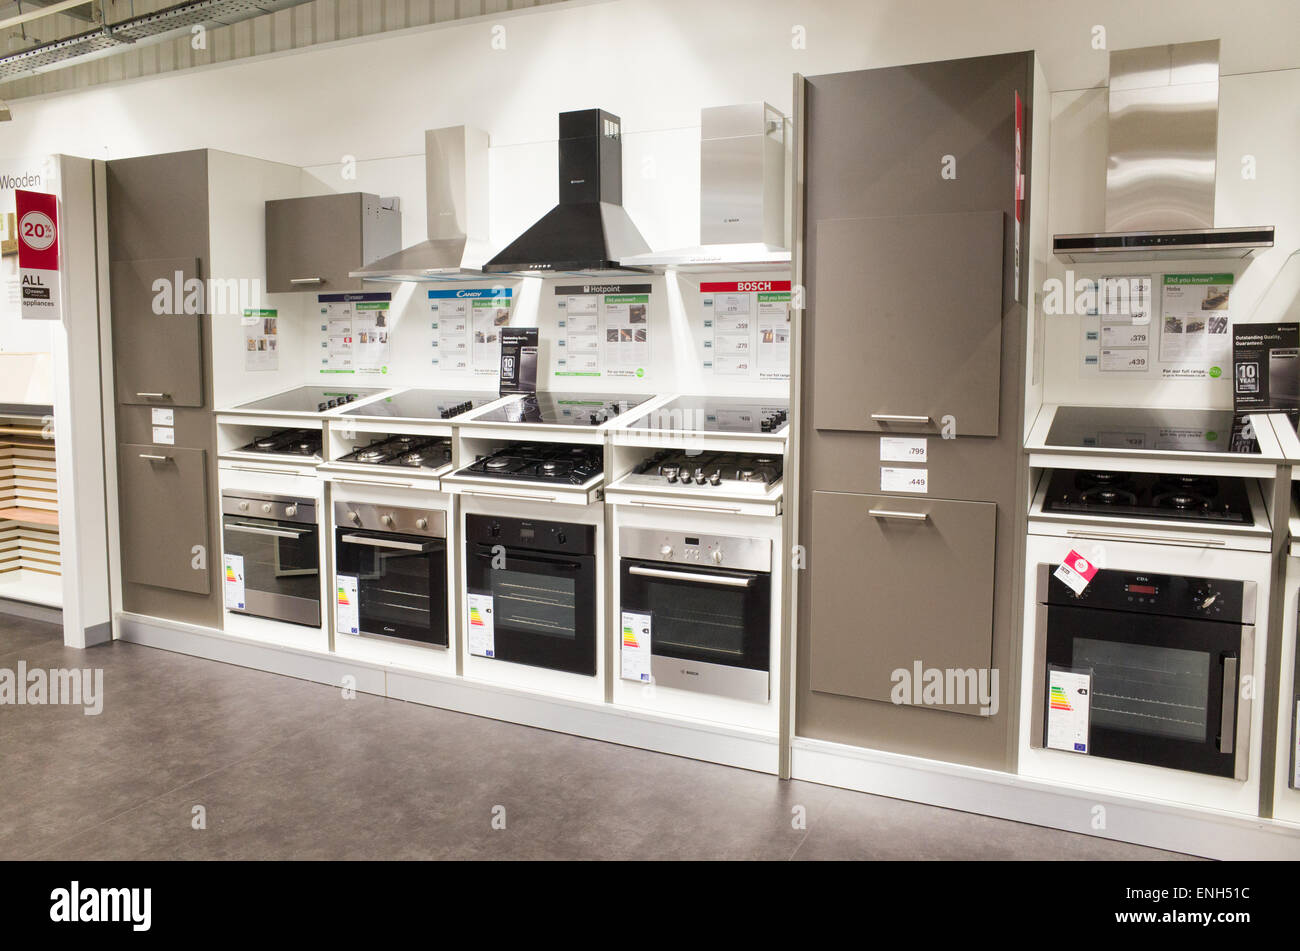 Kitchen cookers in Homebase store, England, UK - Stock Image